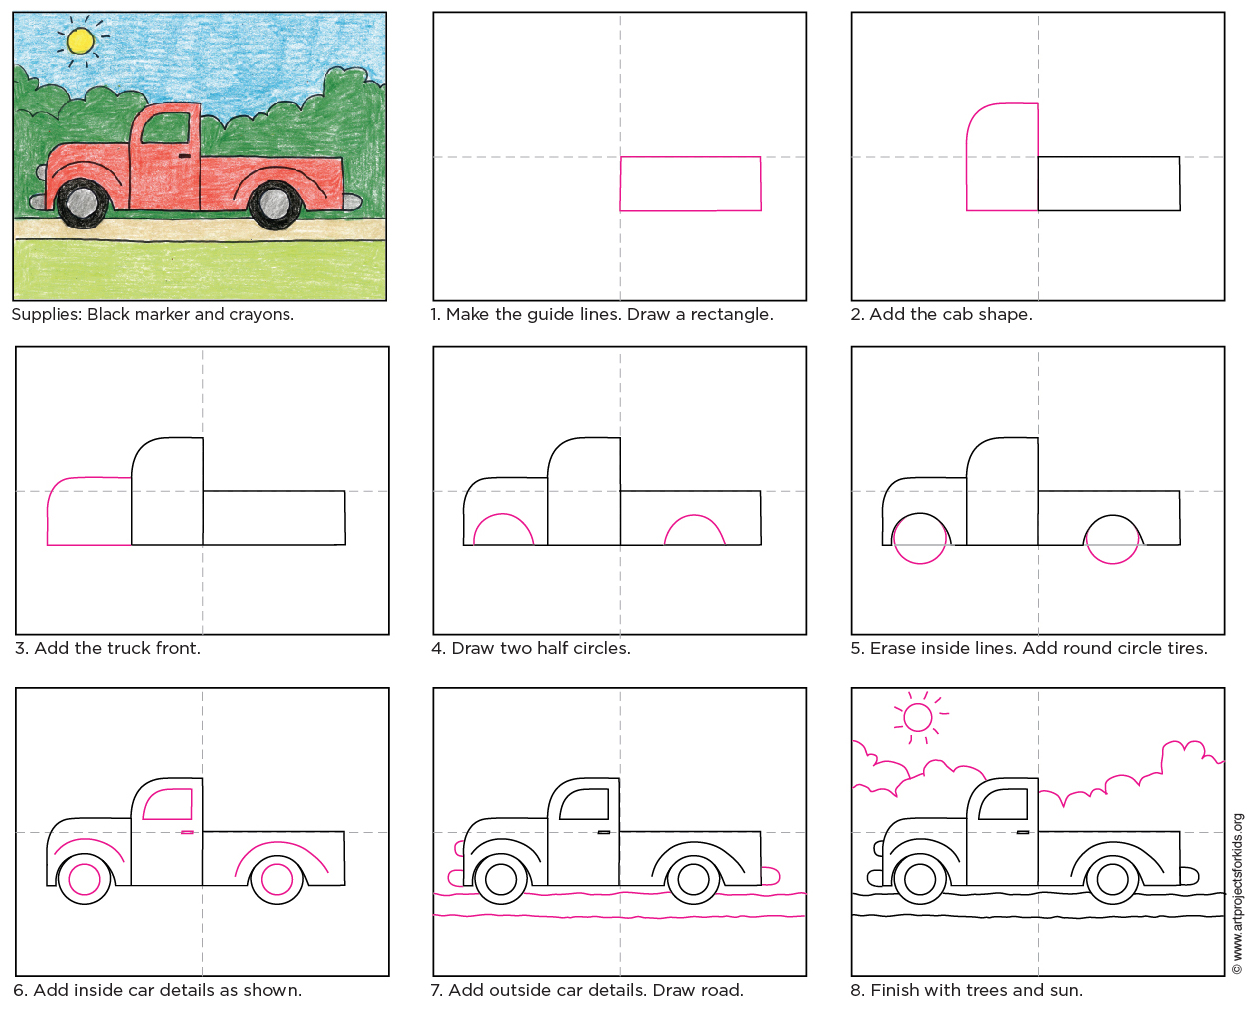 Uncategorized How To Draw A Truck Step By Step draw a simple truck art projects for kids drawing